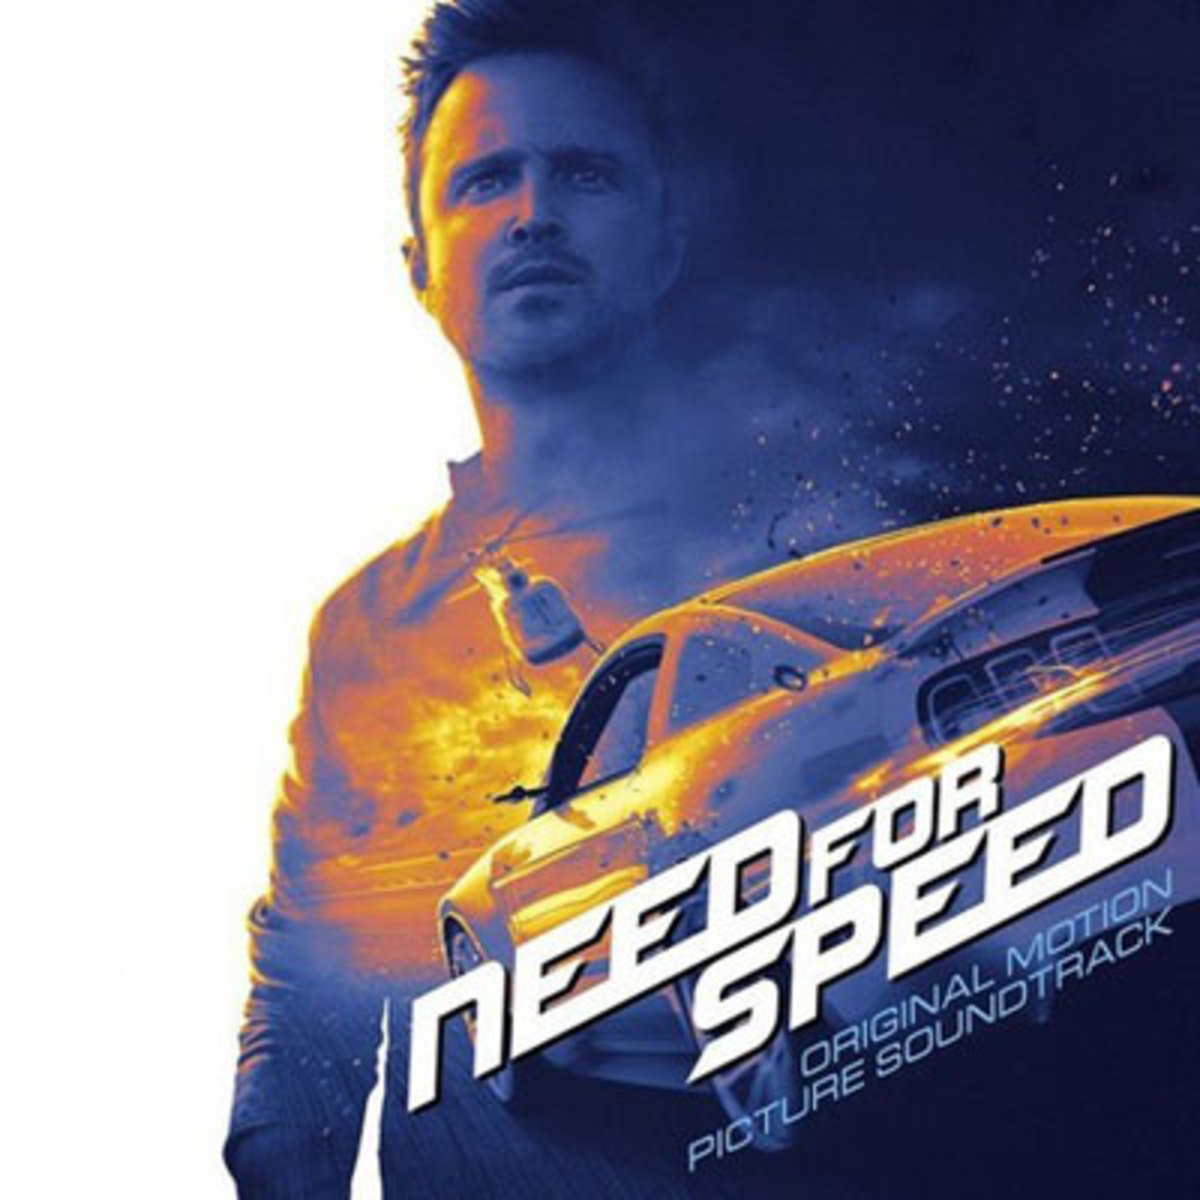 needforspeed-soundtrack.jpg